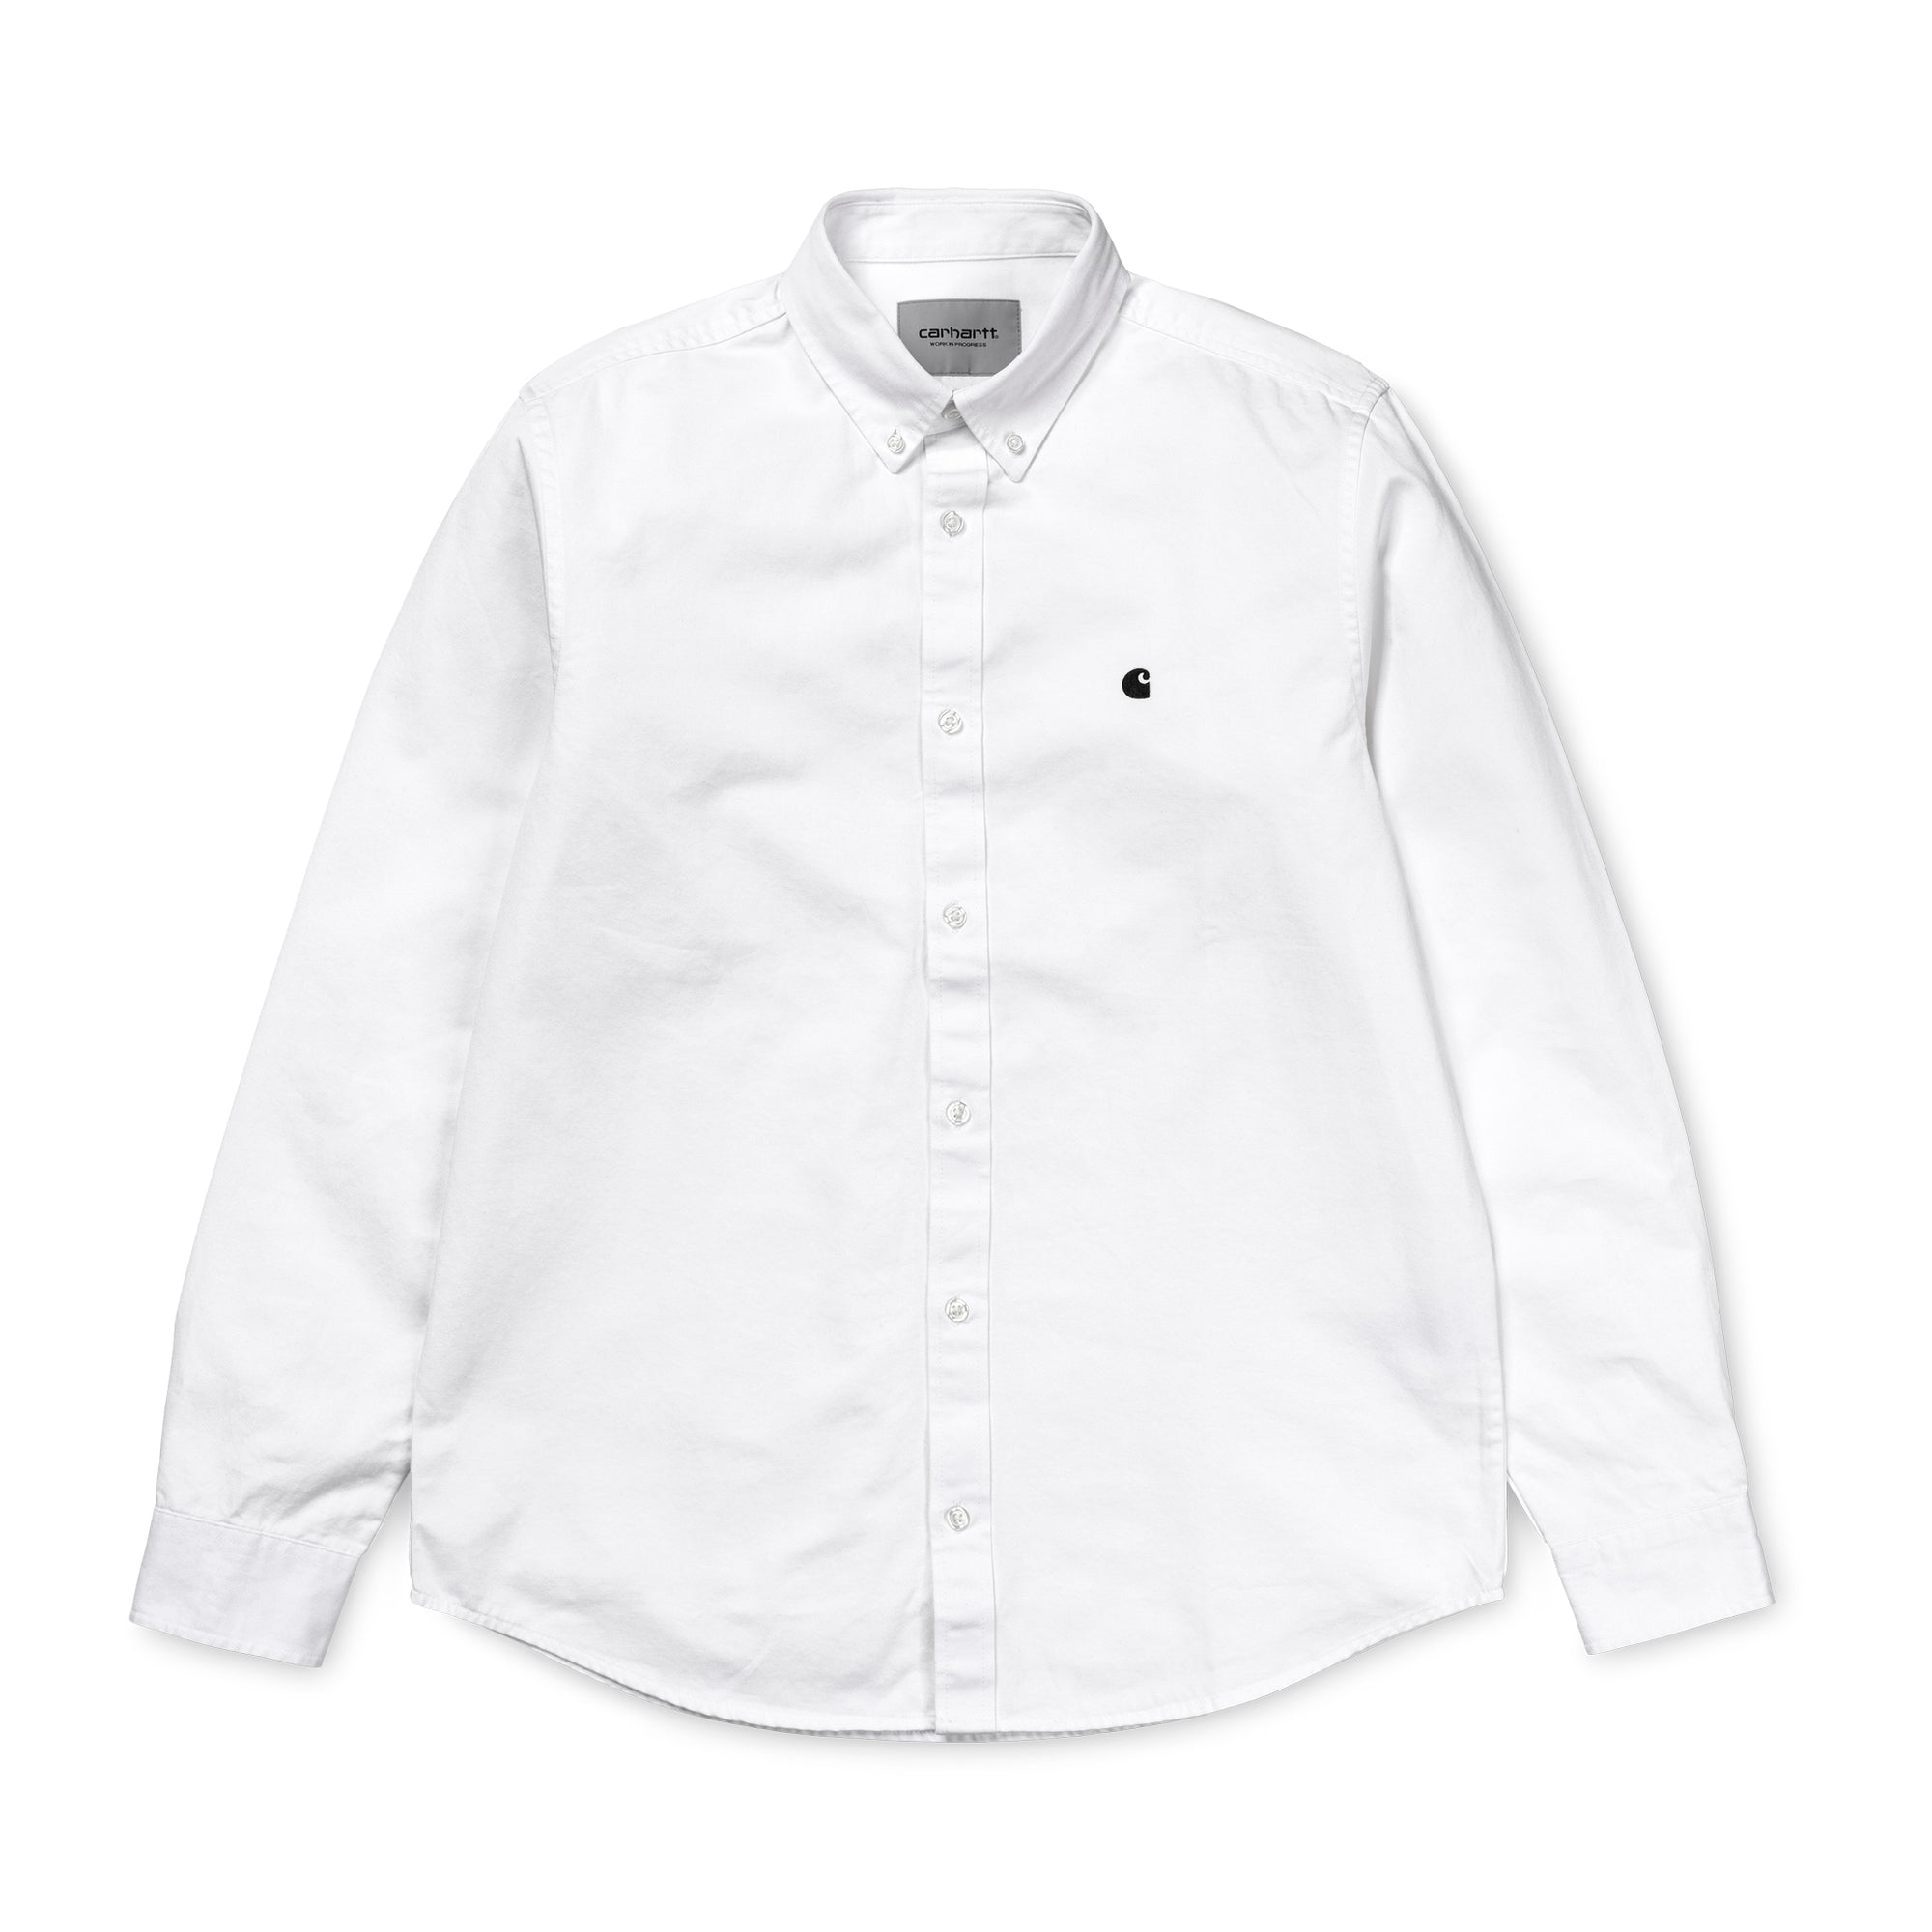 Carhartt WIP Madison Shirt: White / Black - The Union Project